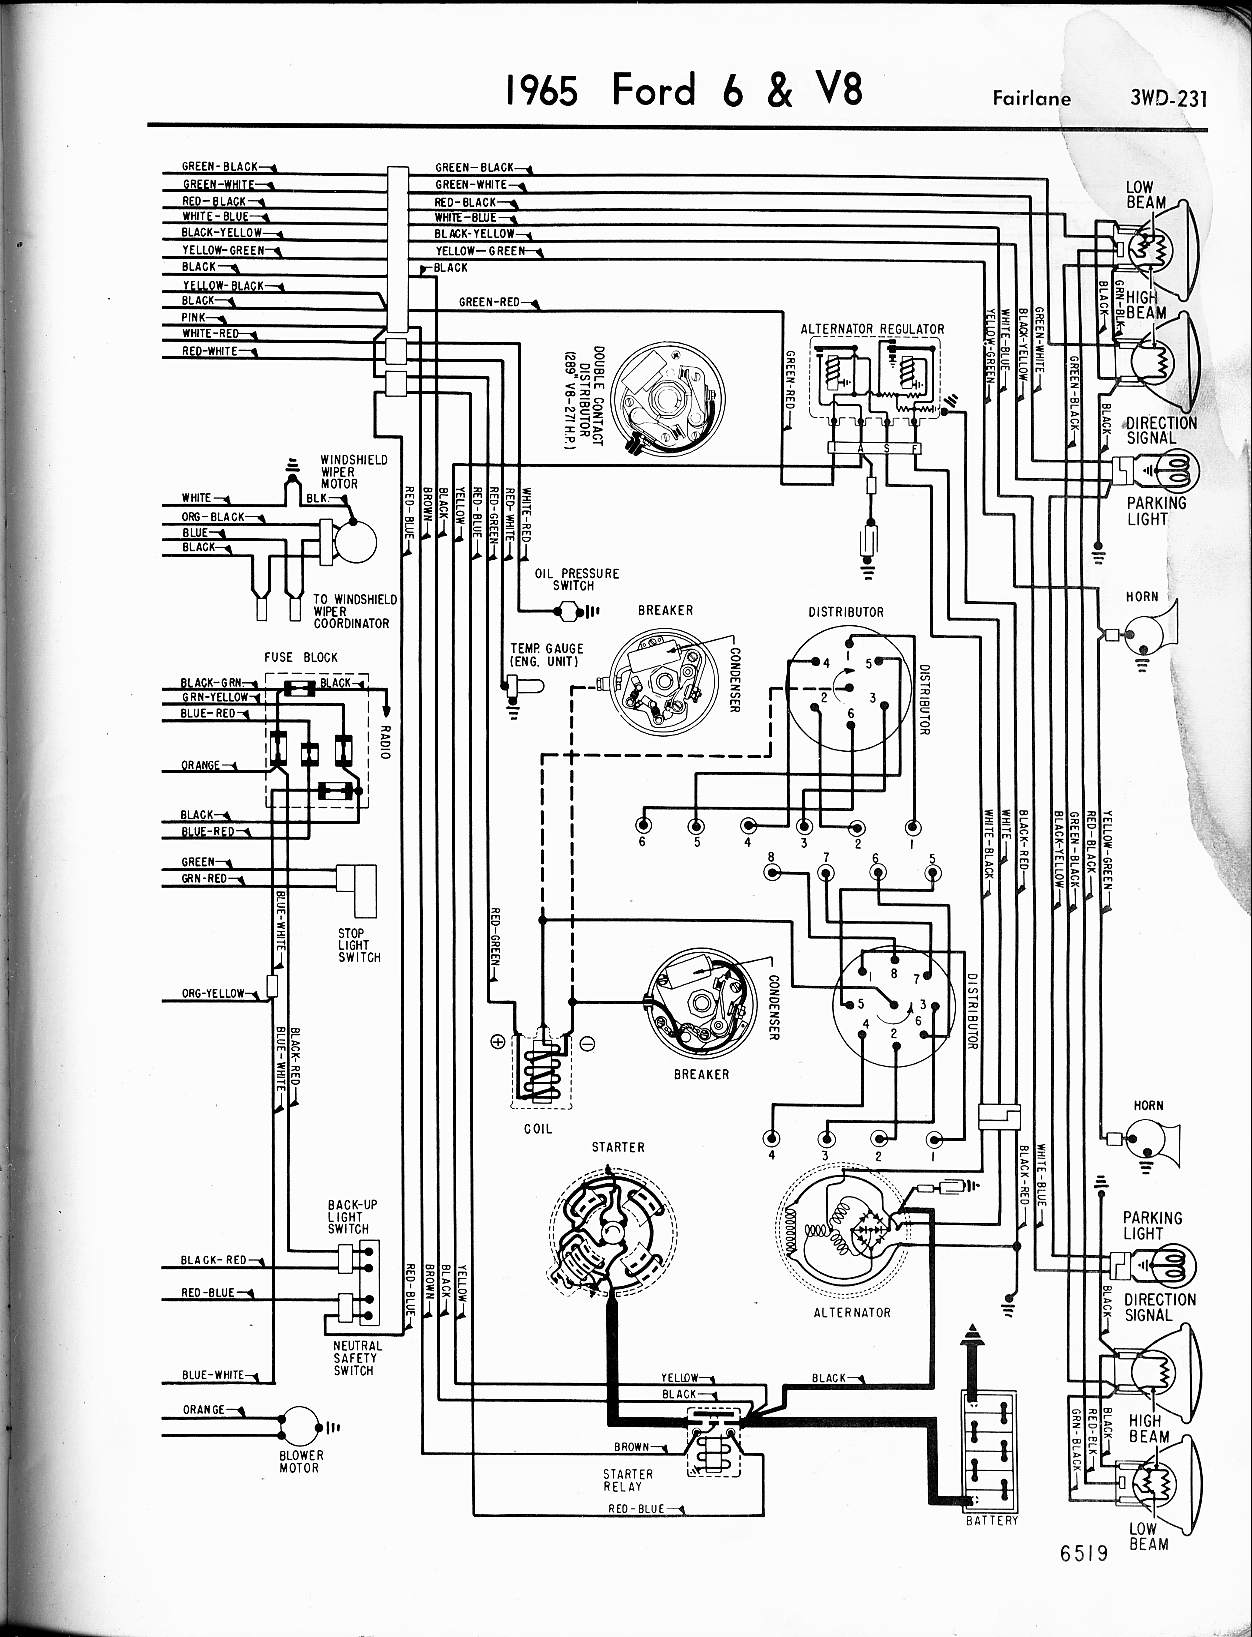 MWire5765 231 57 65 ford wiring diagrams 1965 ford alternator wiring diagram at soozxer.org